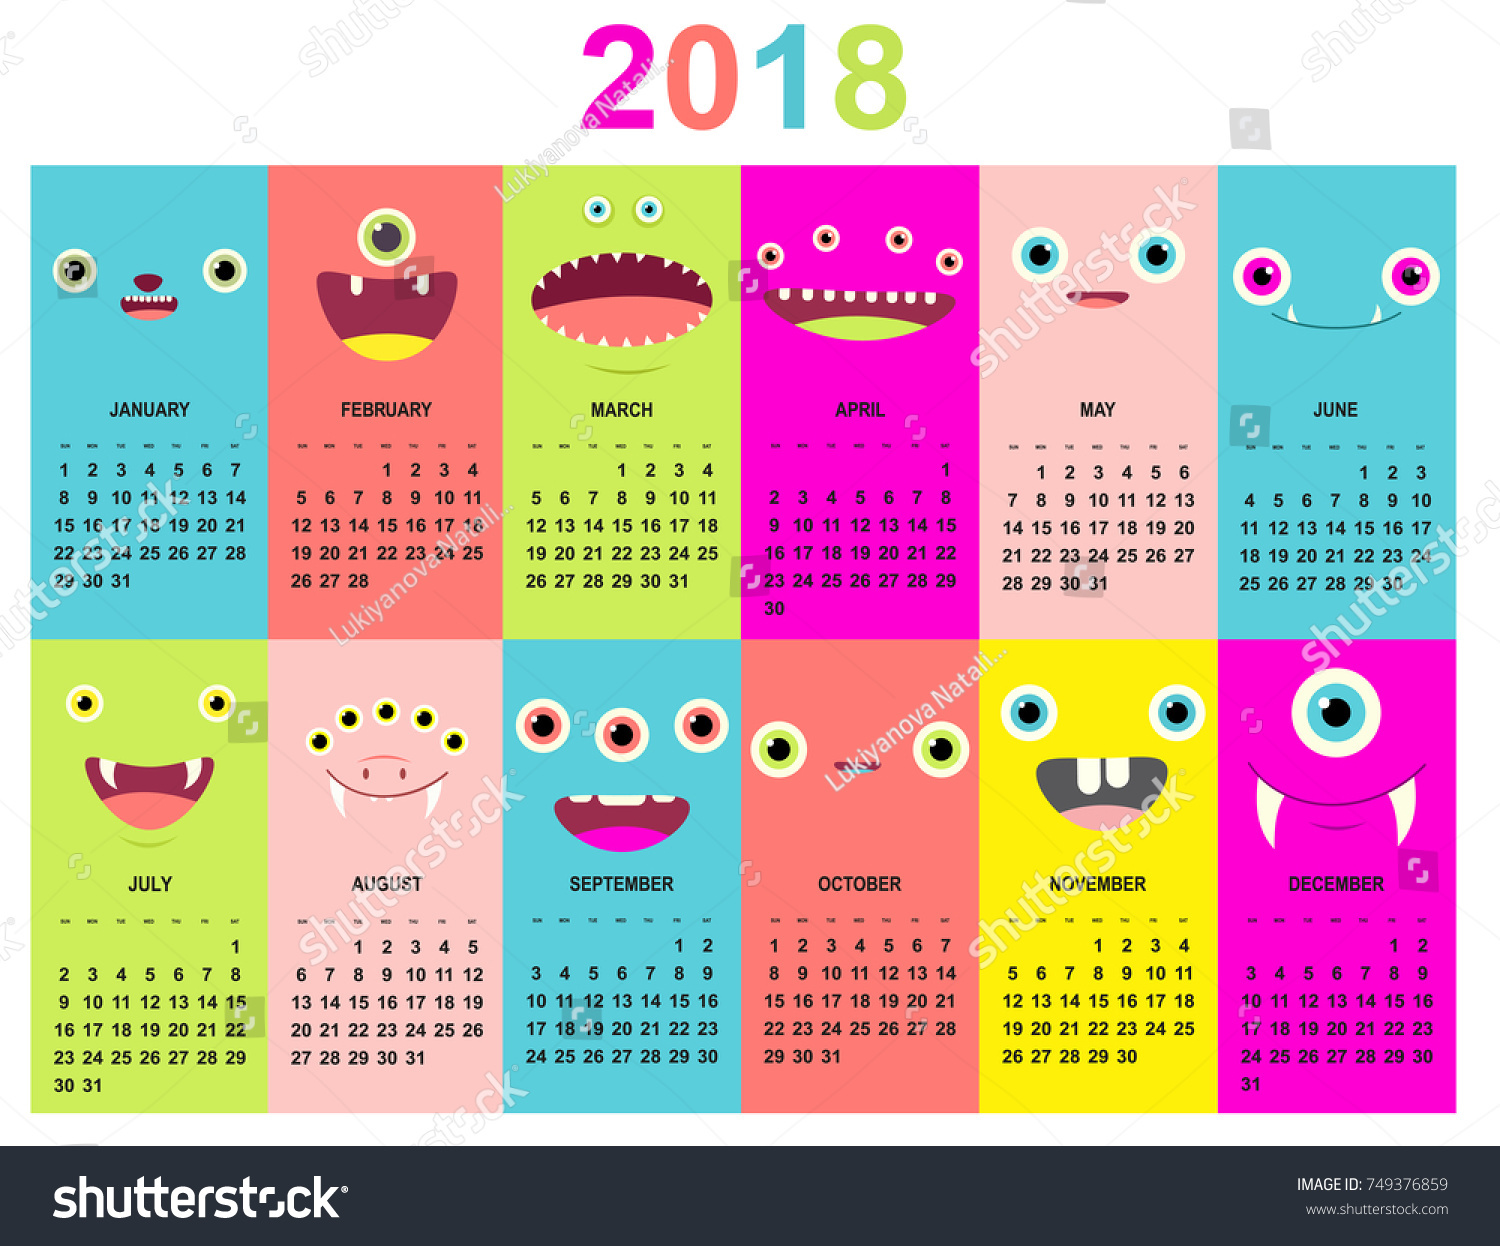 Monthly Calendar 2018 Cute Monsters Faces Stock Vector